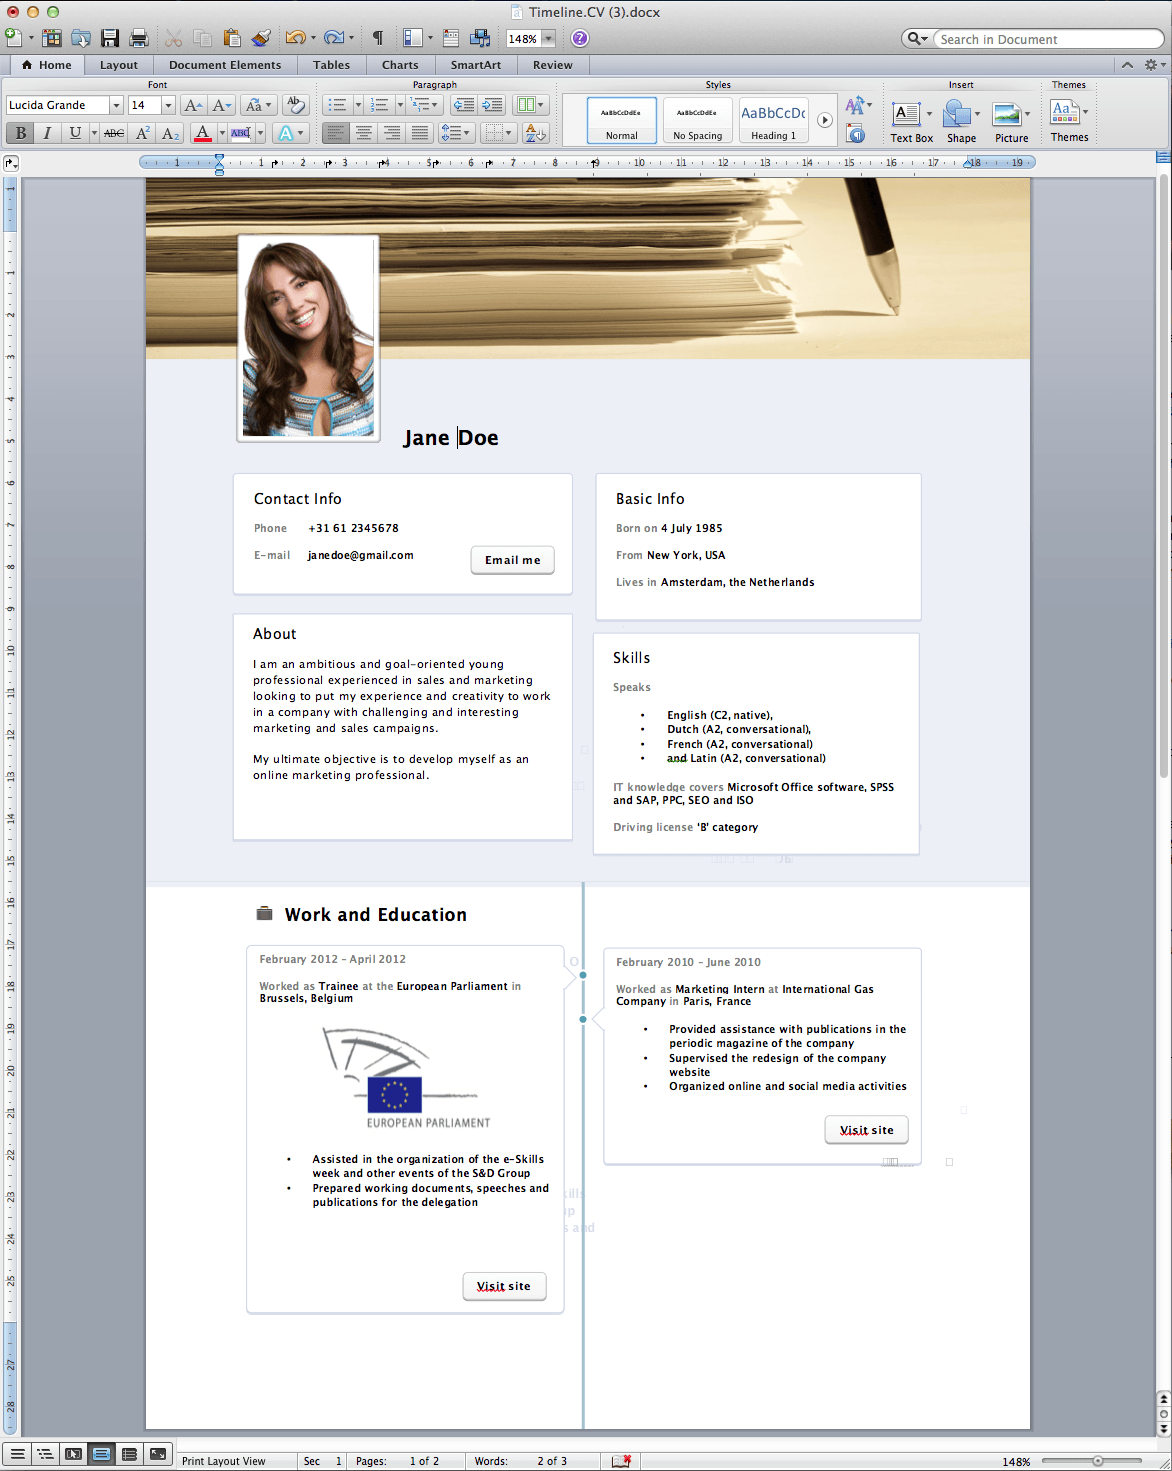 Cv Template South Africa 2014 Httpwebdesign14 Facebook Timeline Resume Template Word Free 187; Rogier Trimpe